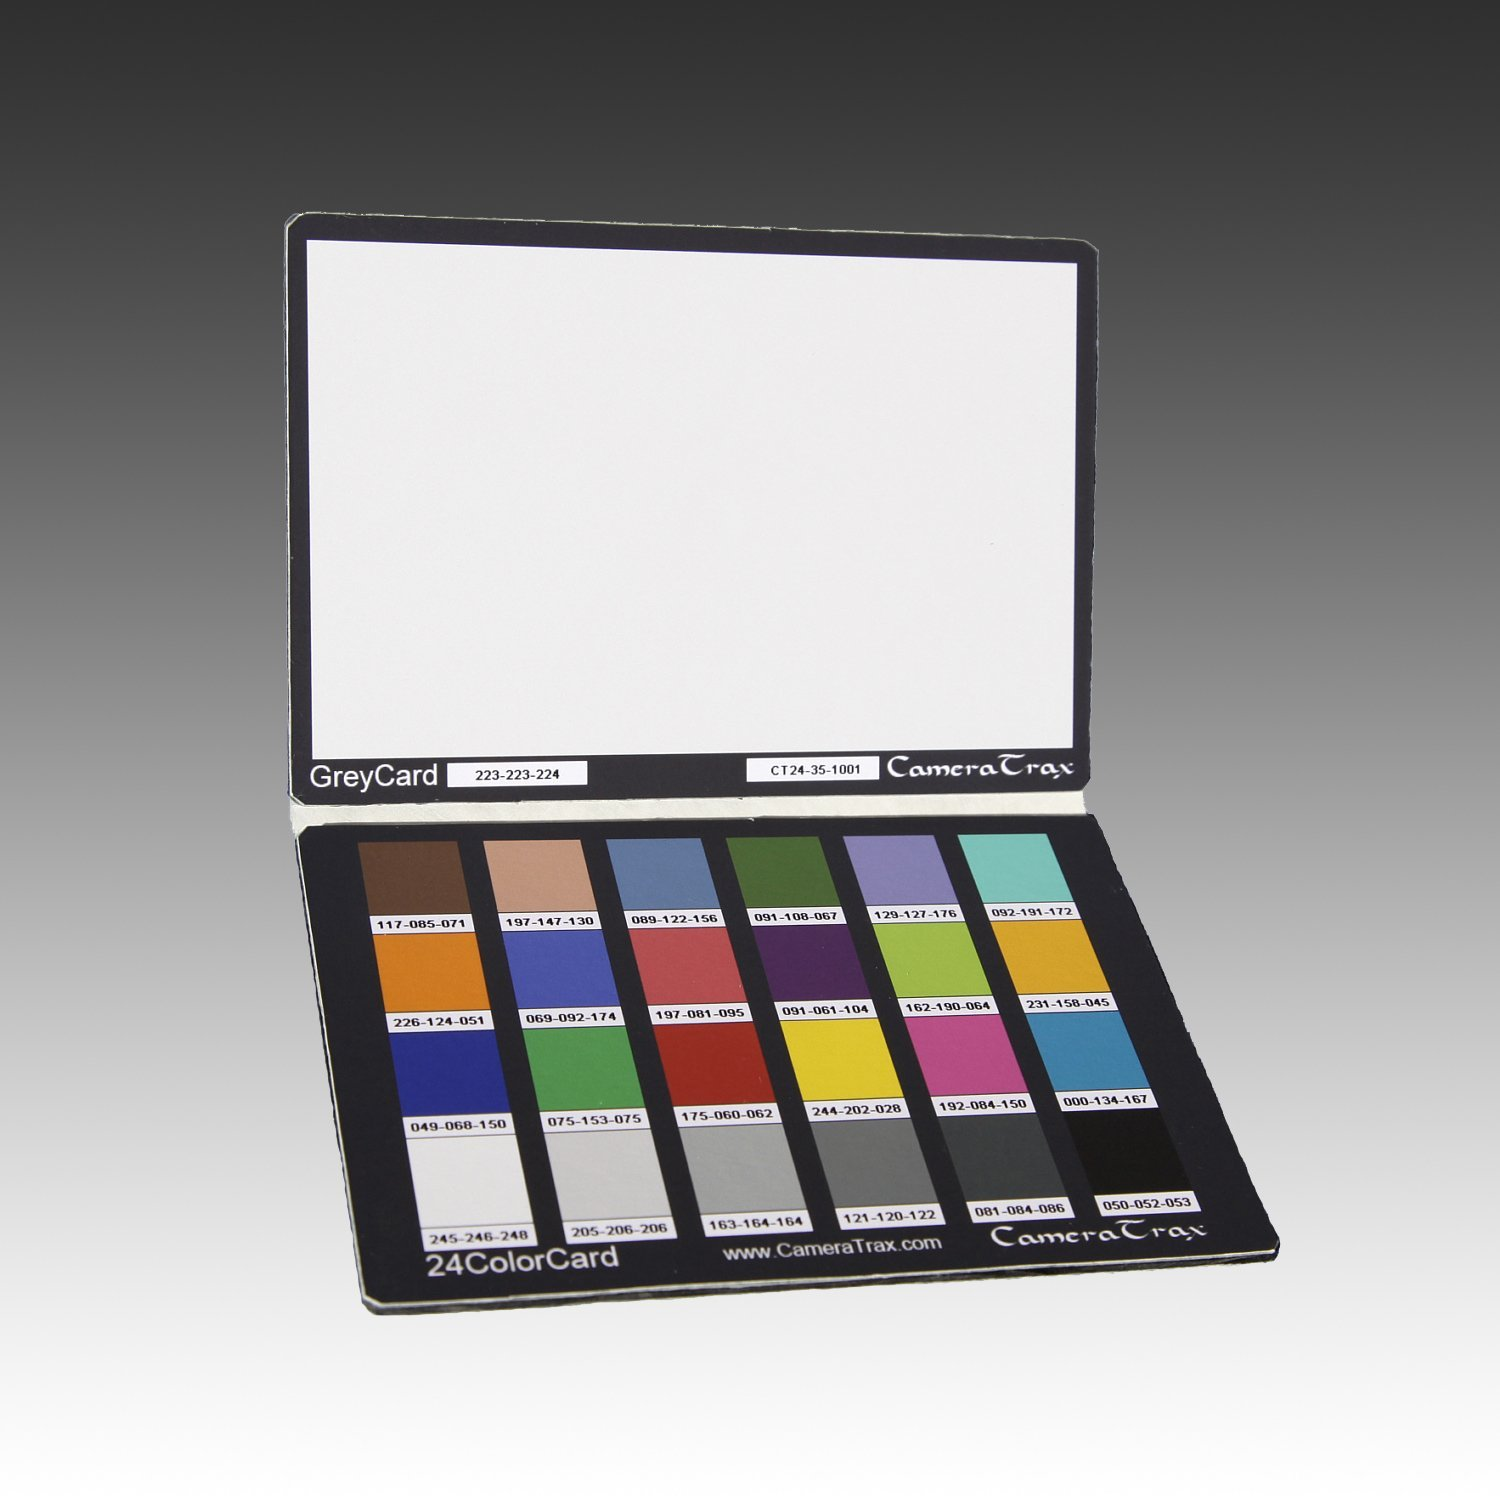 CameraTrax 24ColorCard-3x5 (OneSnapColor) with White Balance and User Guidebook by CameraTrax